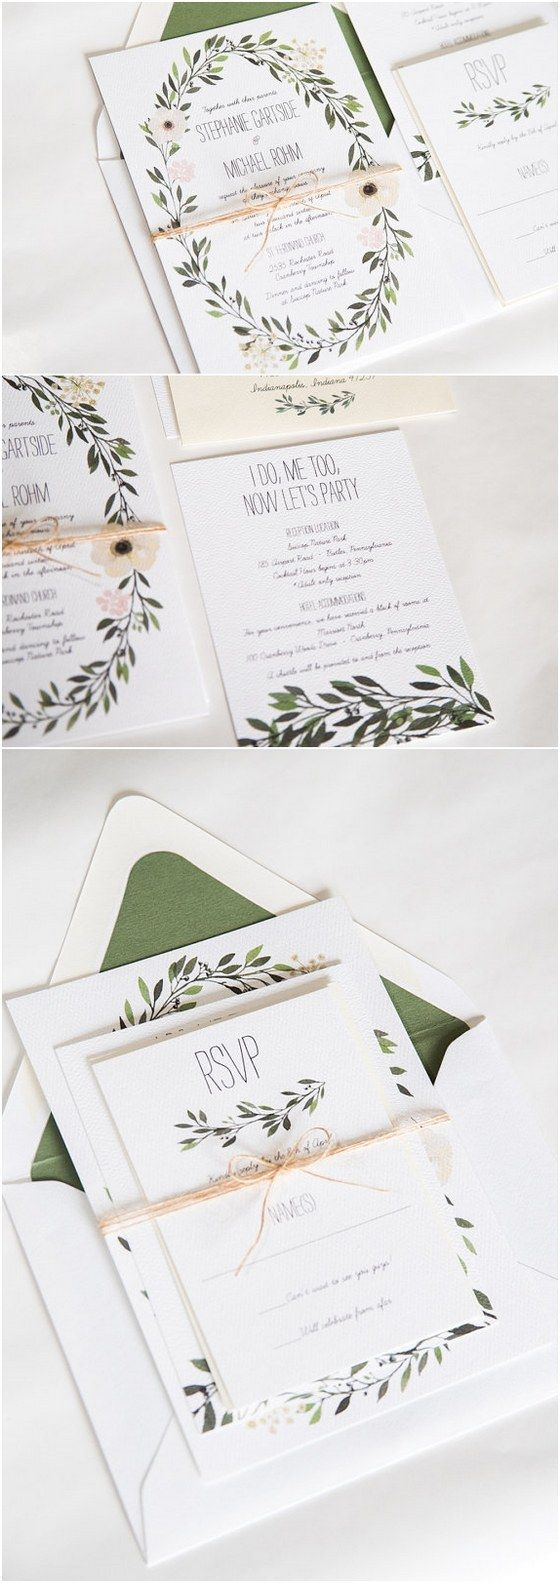 how to address wedding invites%0A Greenery Wedding Invitation Watercolor Greenery Wreath Wedding Invite   STEPHANIE   Greenery  Wreaths and Watercolor